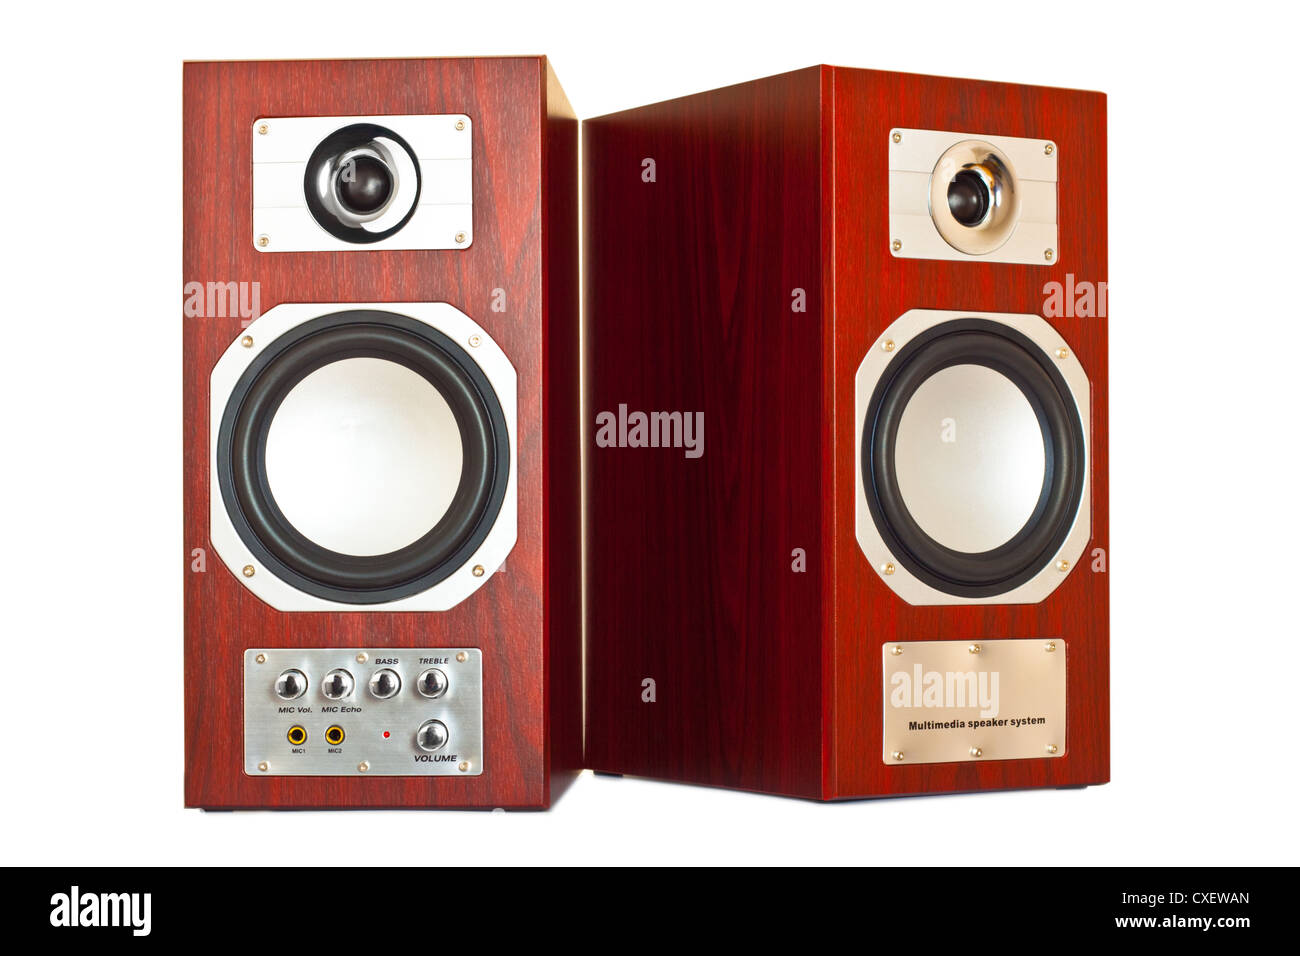 two brown speakers - Stock Image